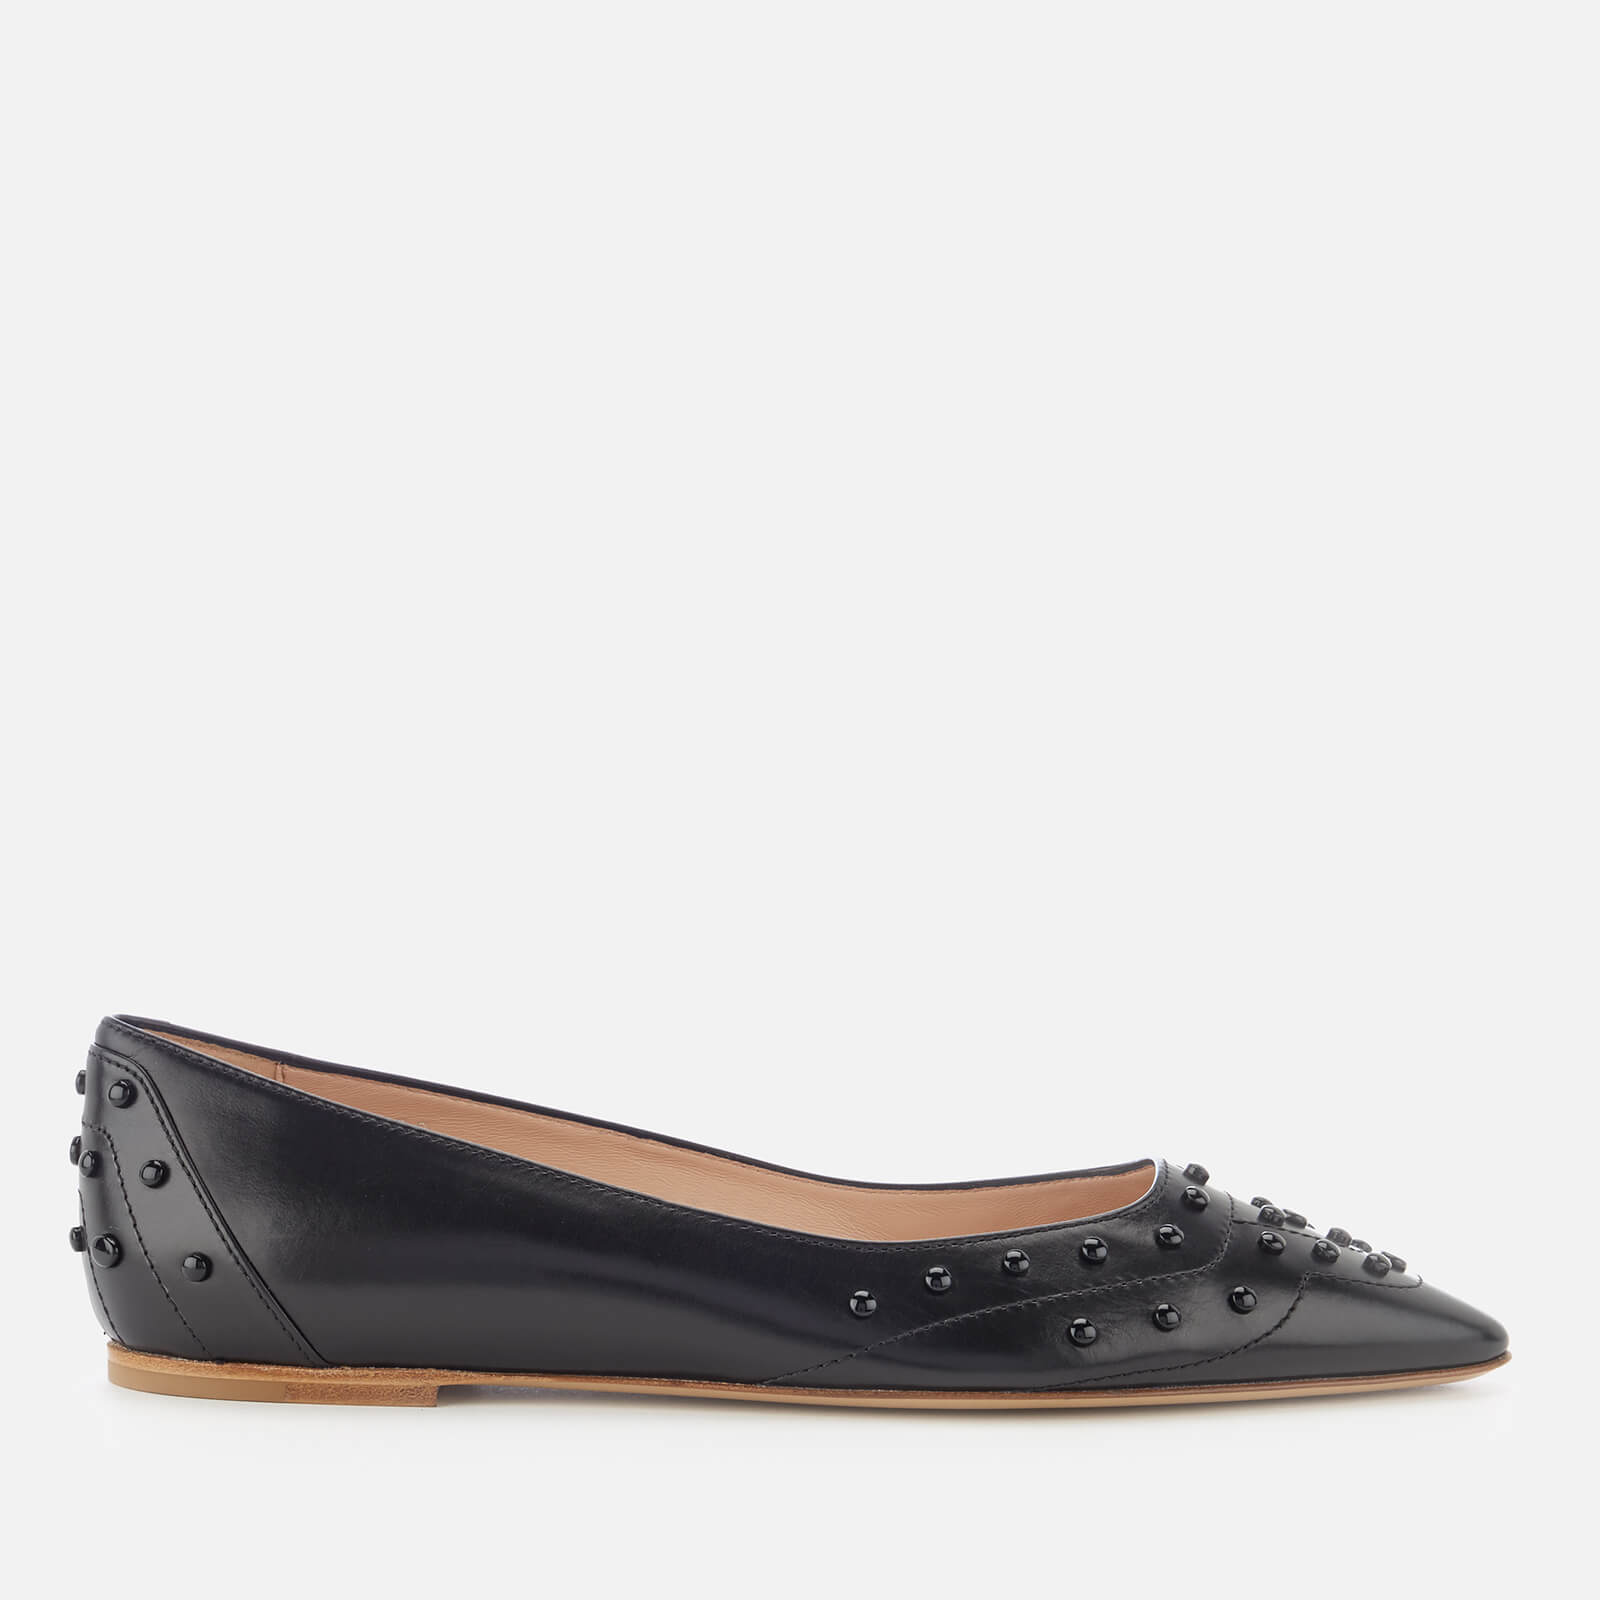 fc0cb93c22 Tod's Women's Pointed Ballet Flats - Black - Free UK Delivery over £50